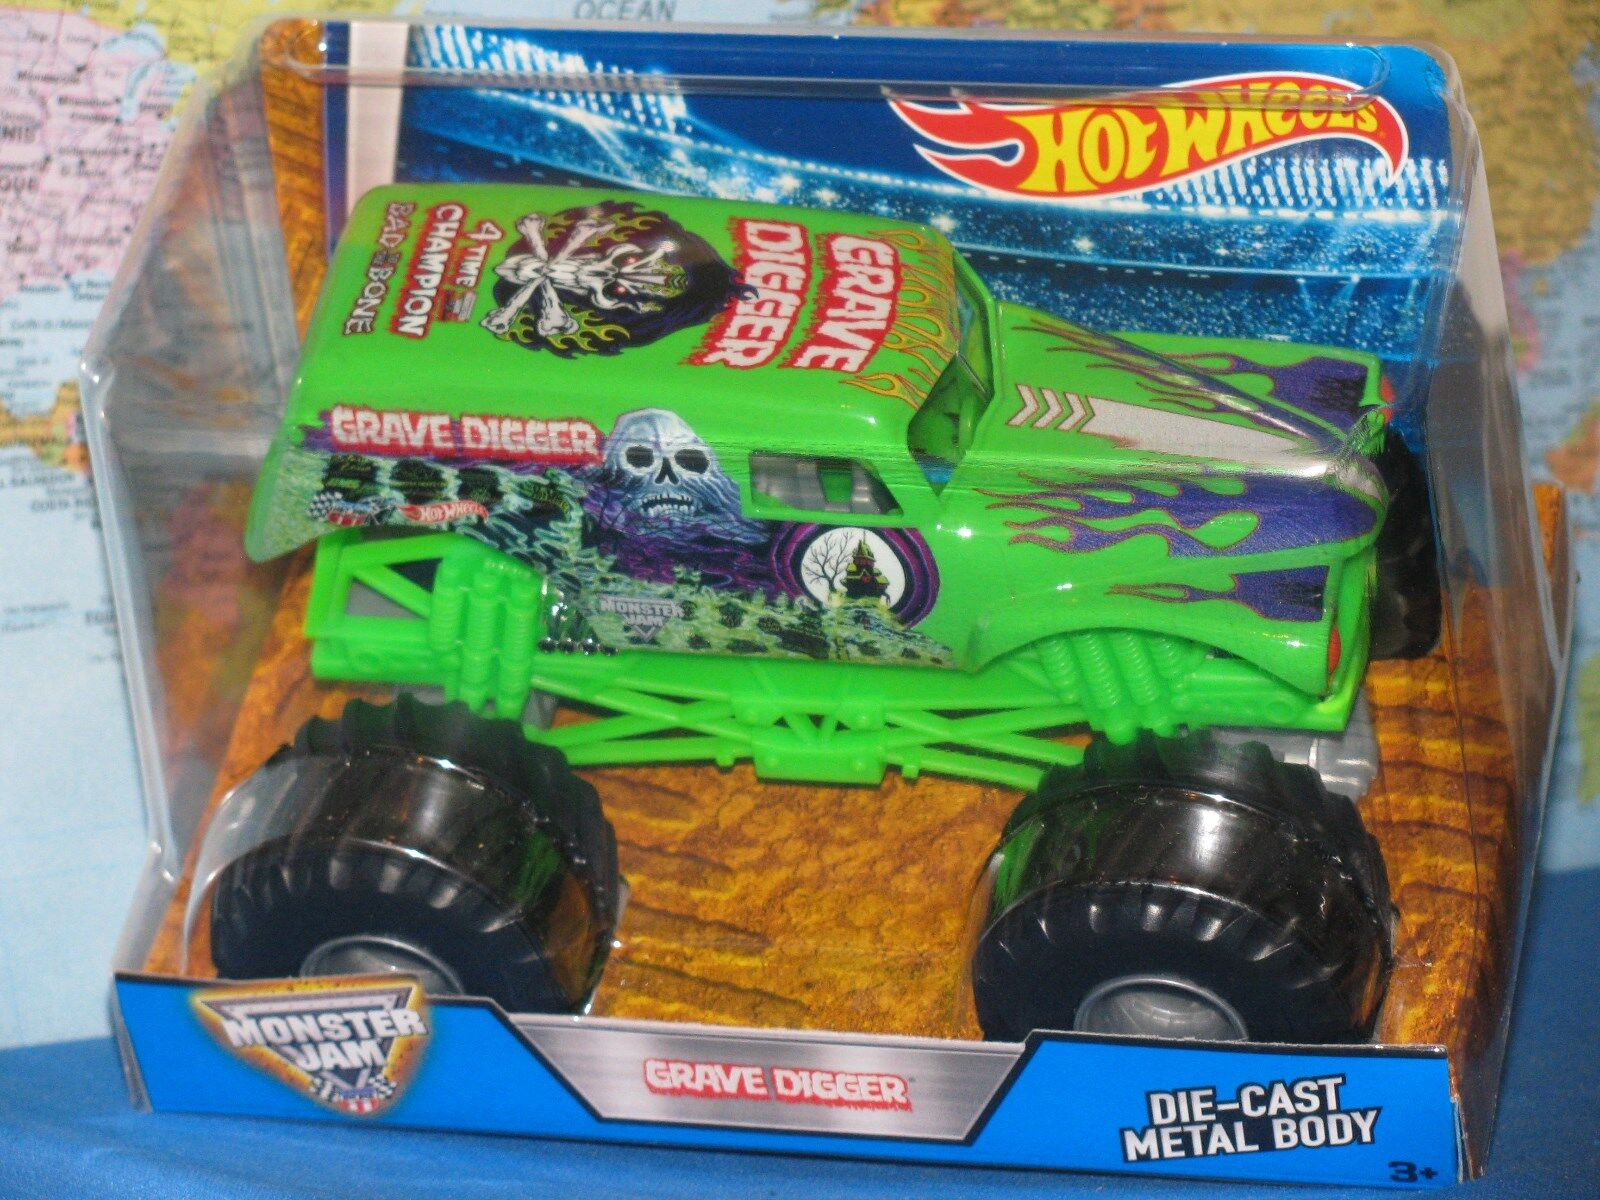 1 24 Hot Wheels Mermelada de Monstruo Grave Digger Camión 4 Hora Champion verde